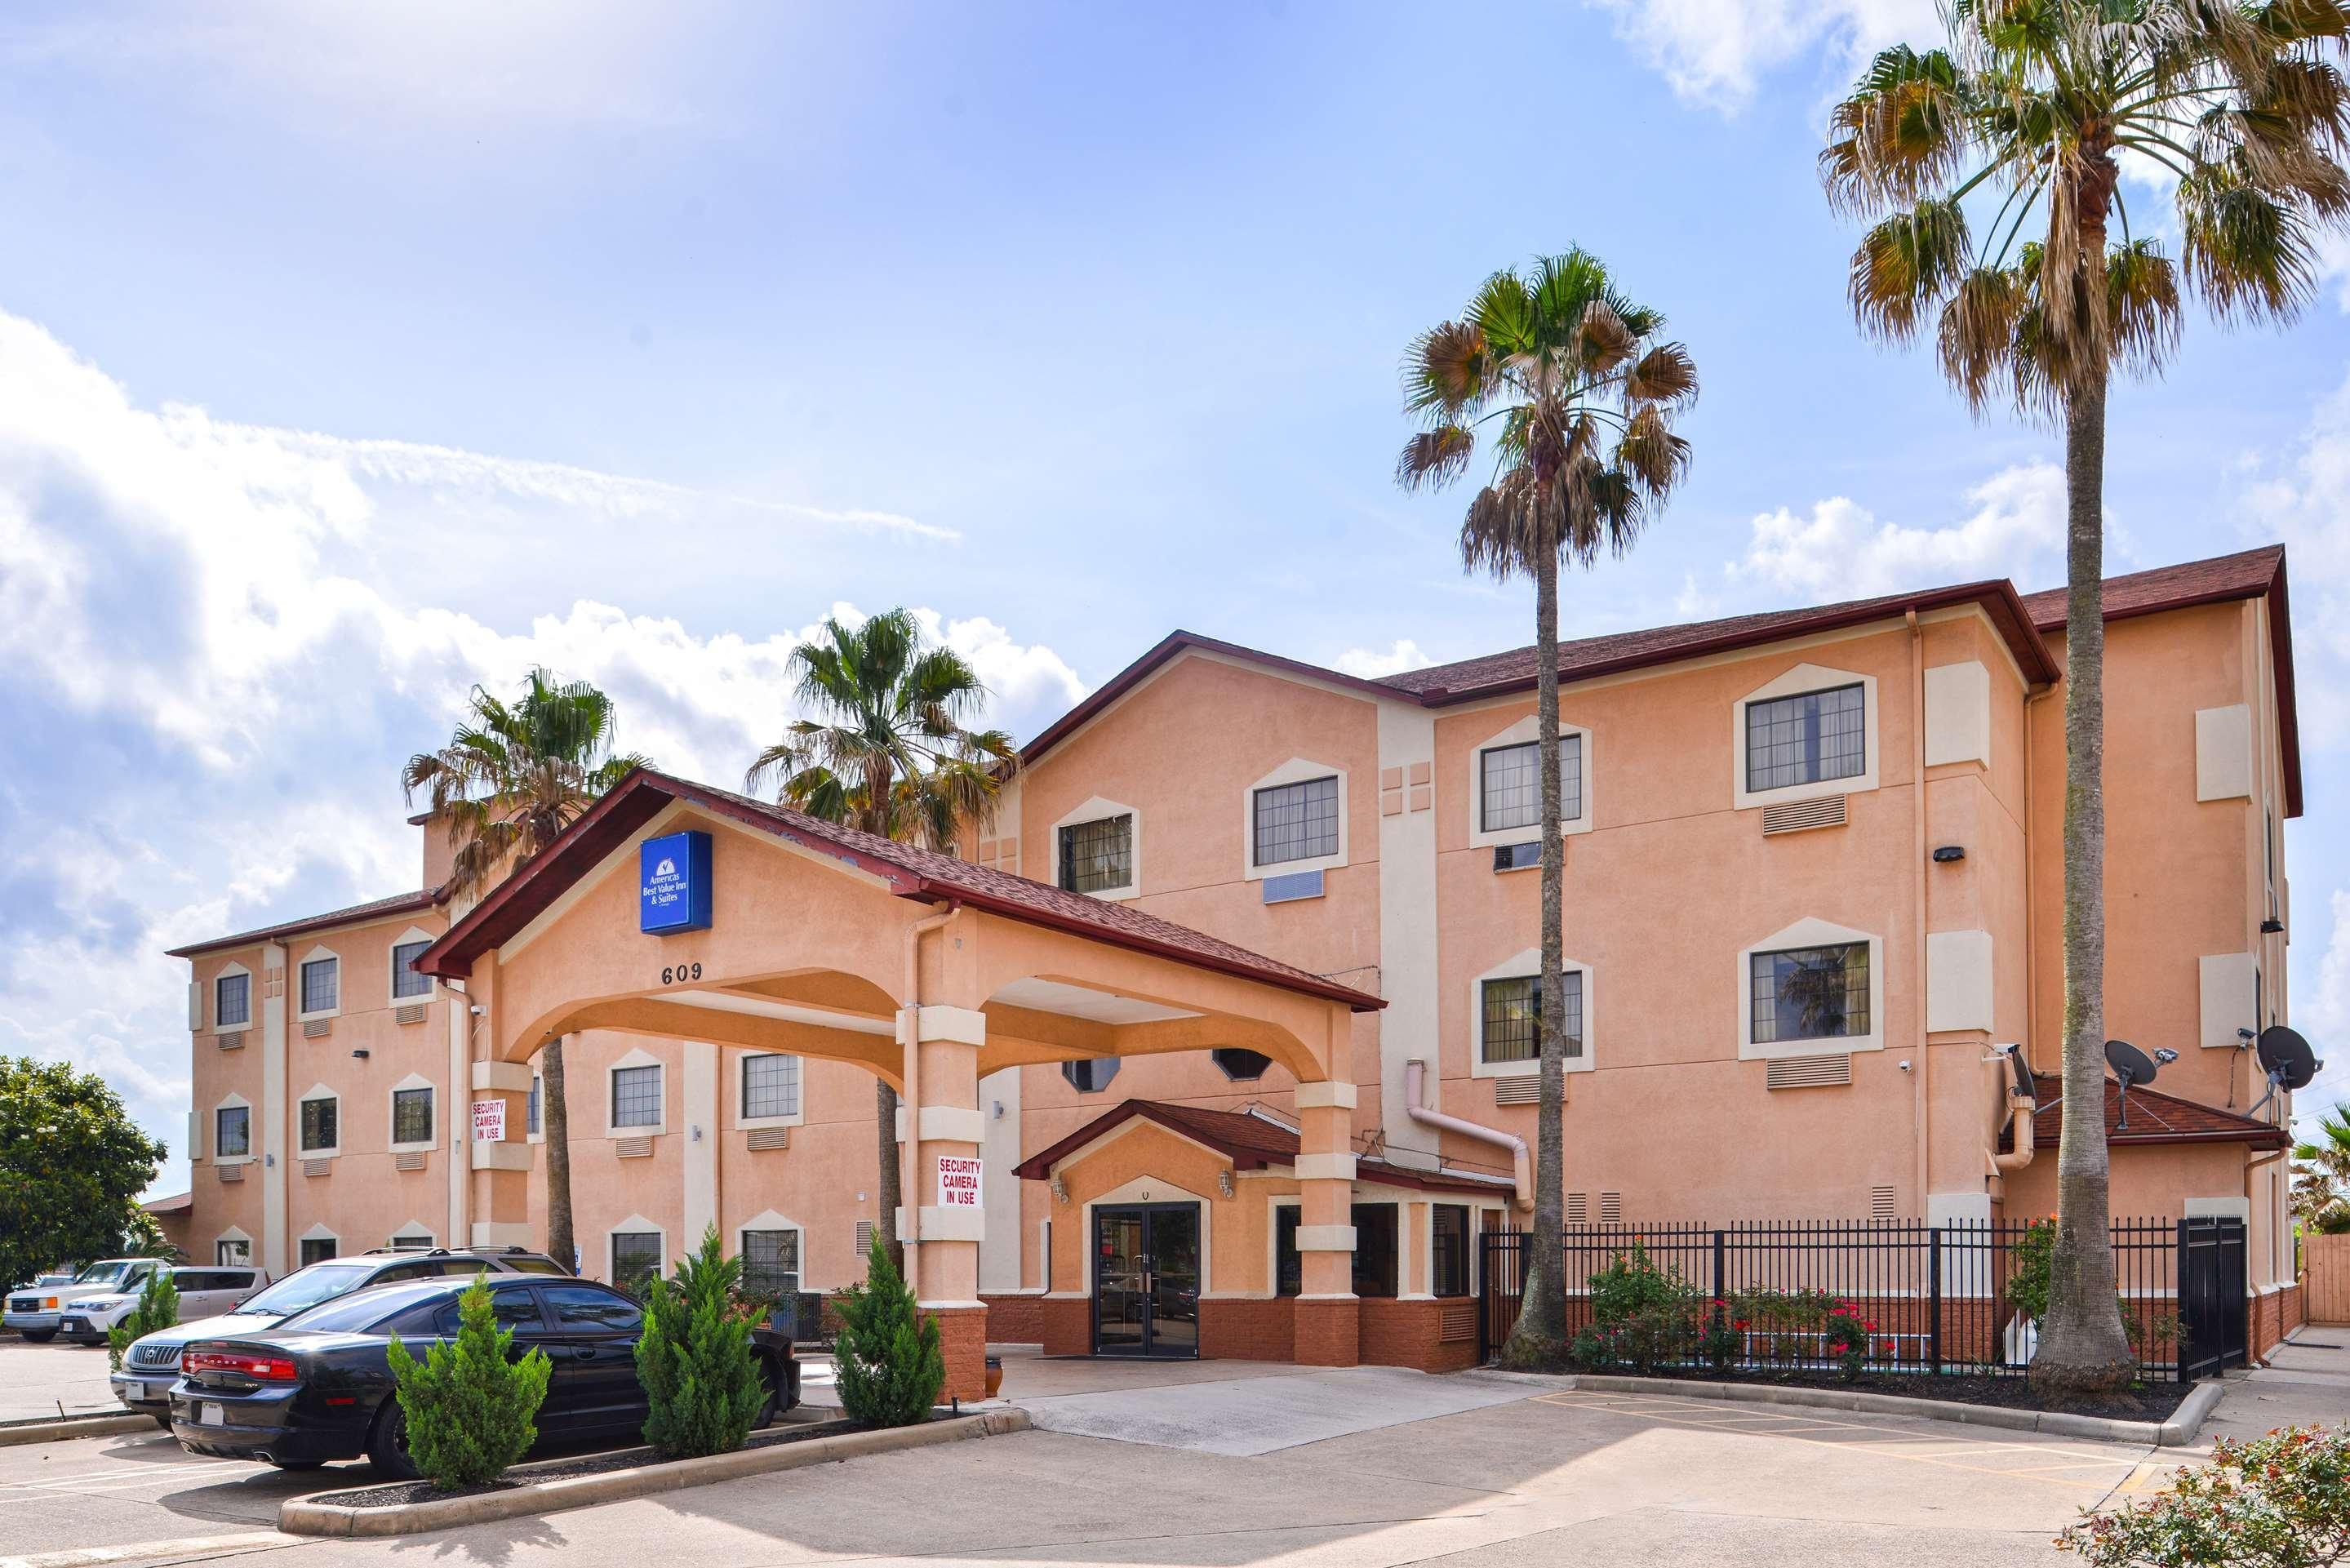 Americas Best Value Inn Houston at FM 1960 & I-45